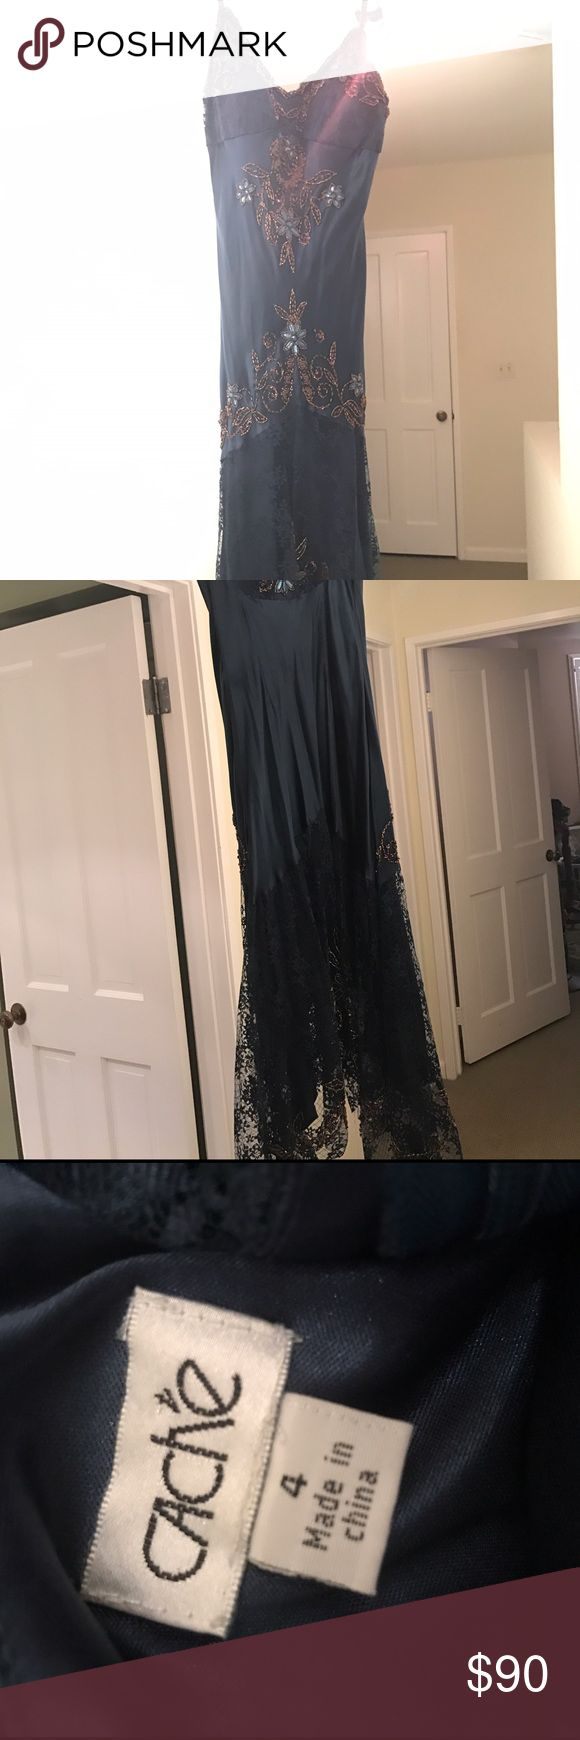 Midnight blue silk cocktail dress w gold beading Adjustable straps, lower cut with built in bra. Form fitting on bodice with a flowy lace trim on the bottom. Falls below the knee. Gold beaded designs along the silk fabric. Cache Dresses